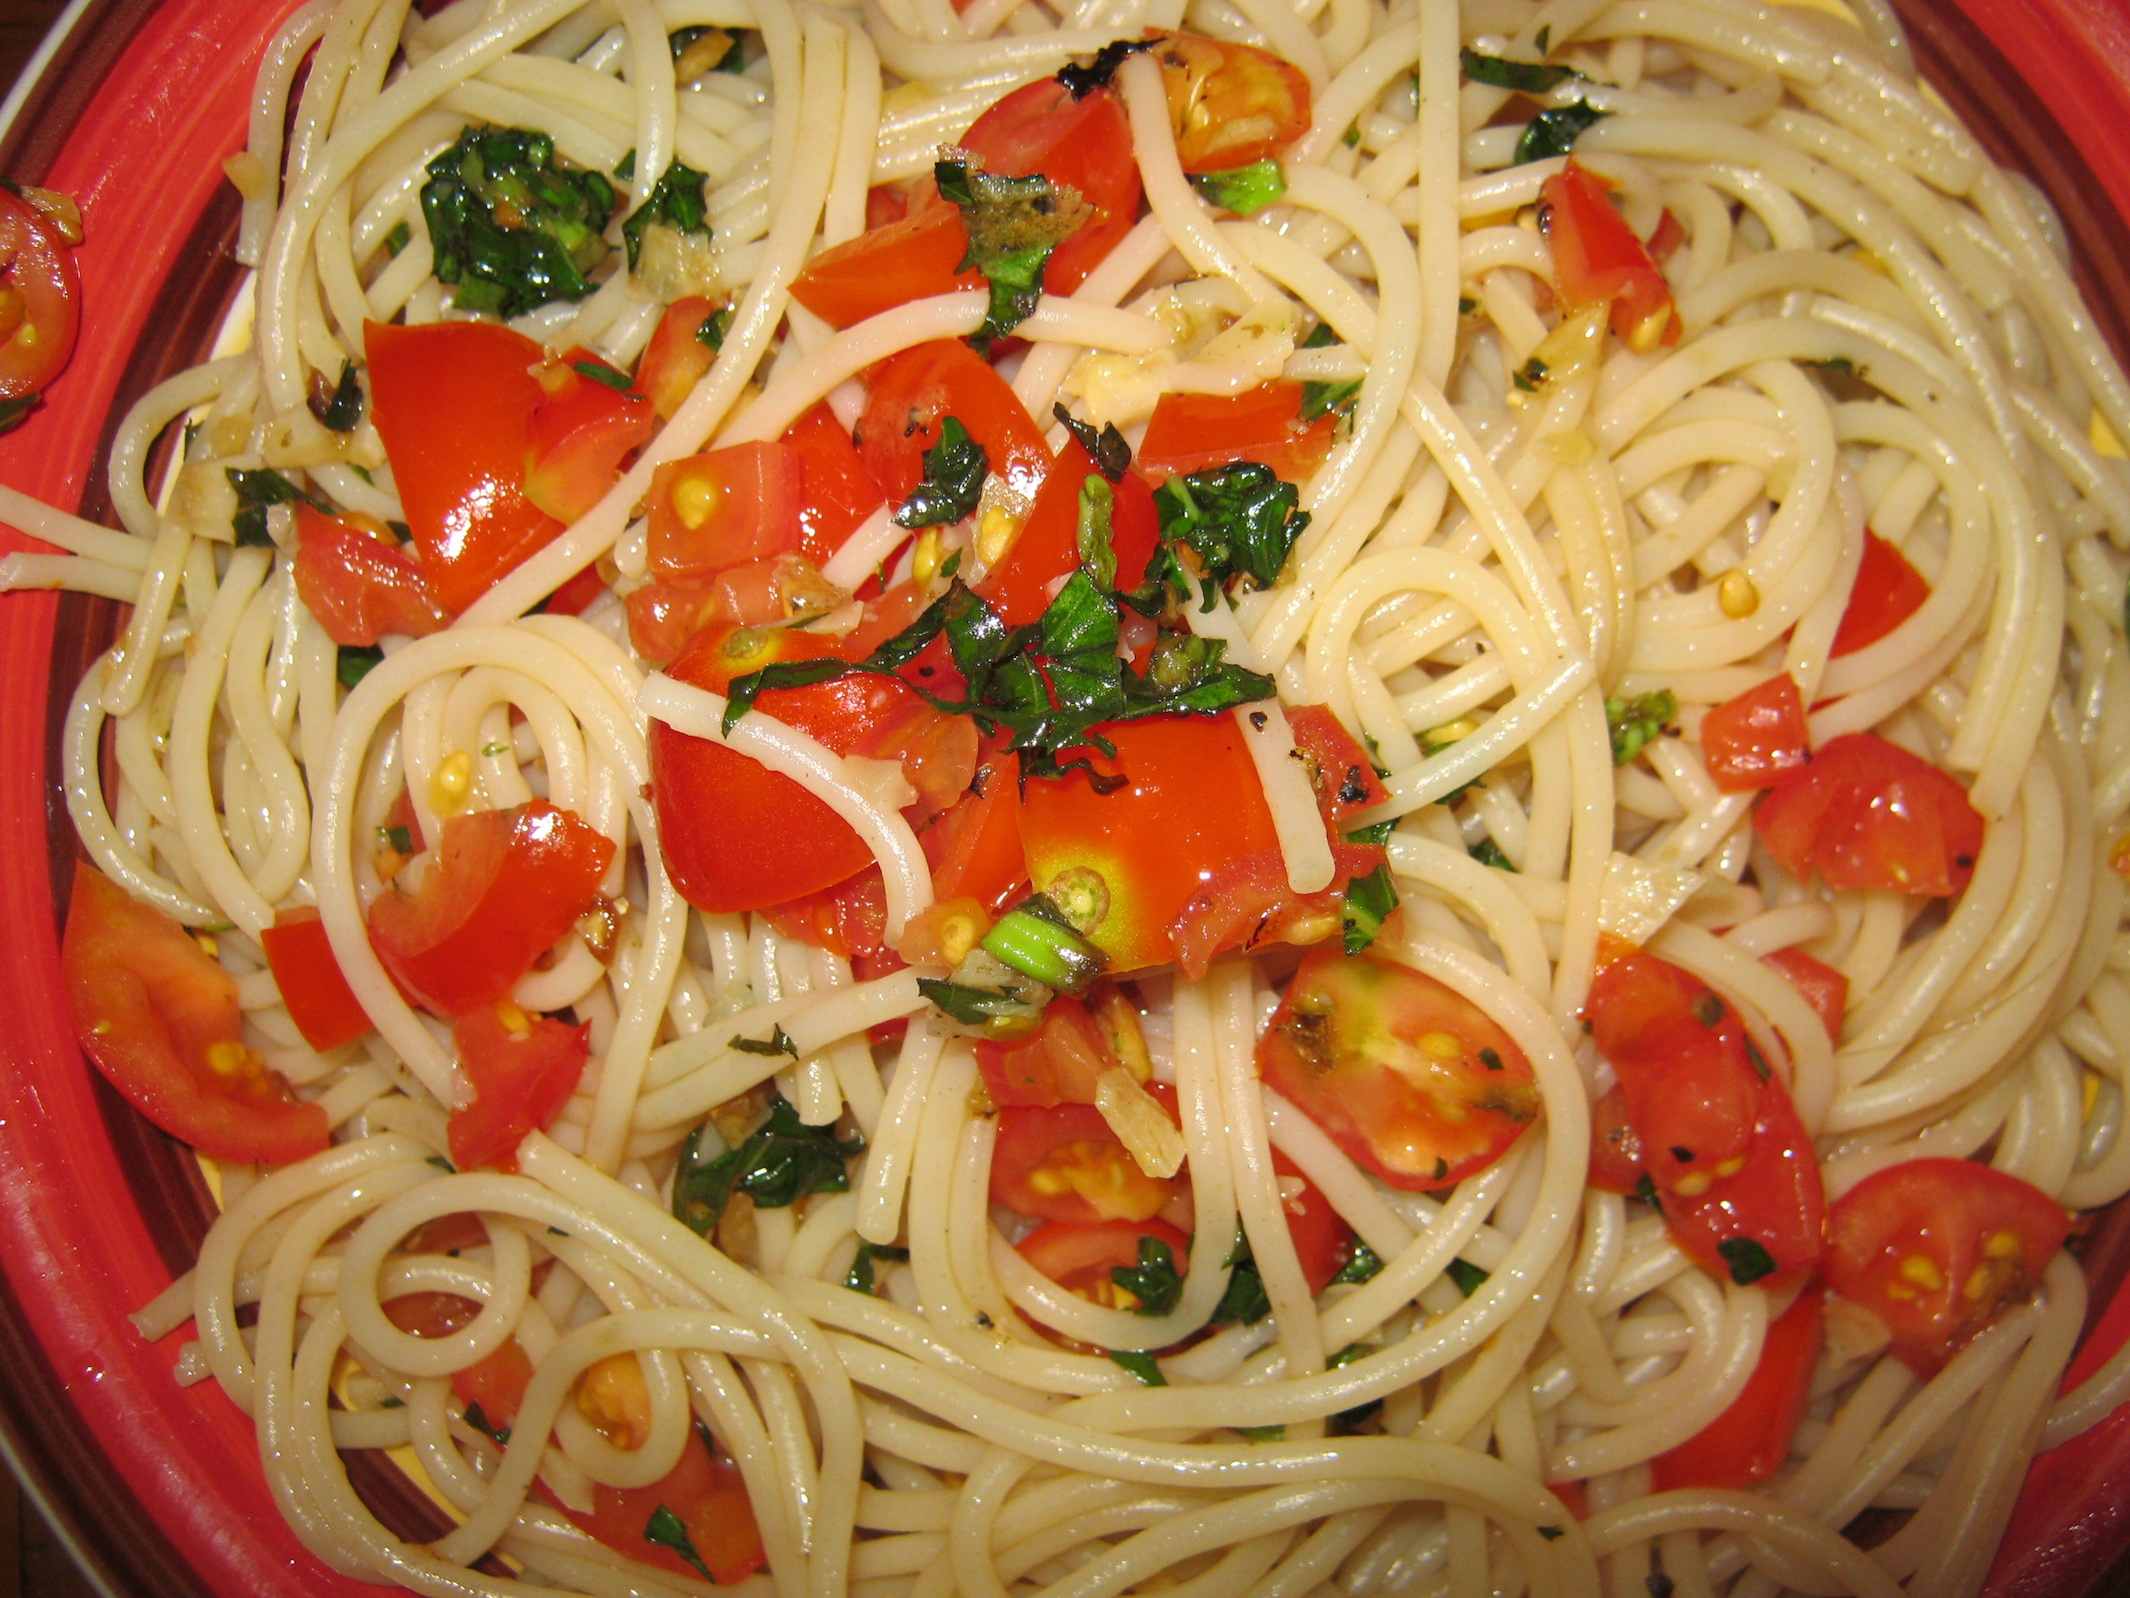 Spaghetti with fresh garden tomato sauce